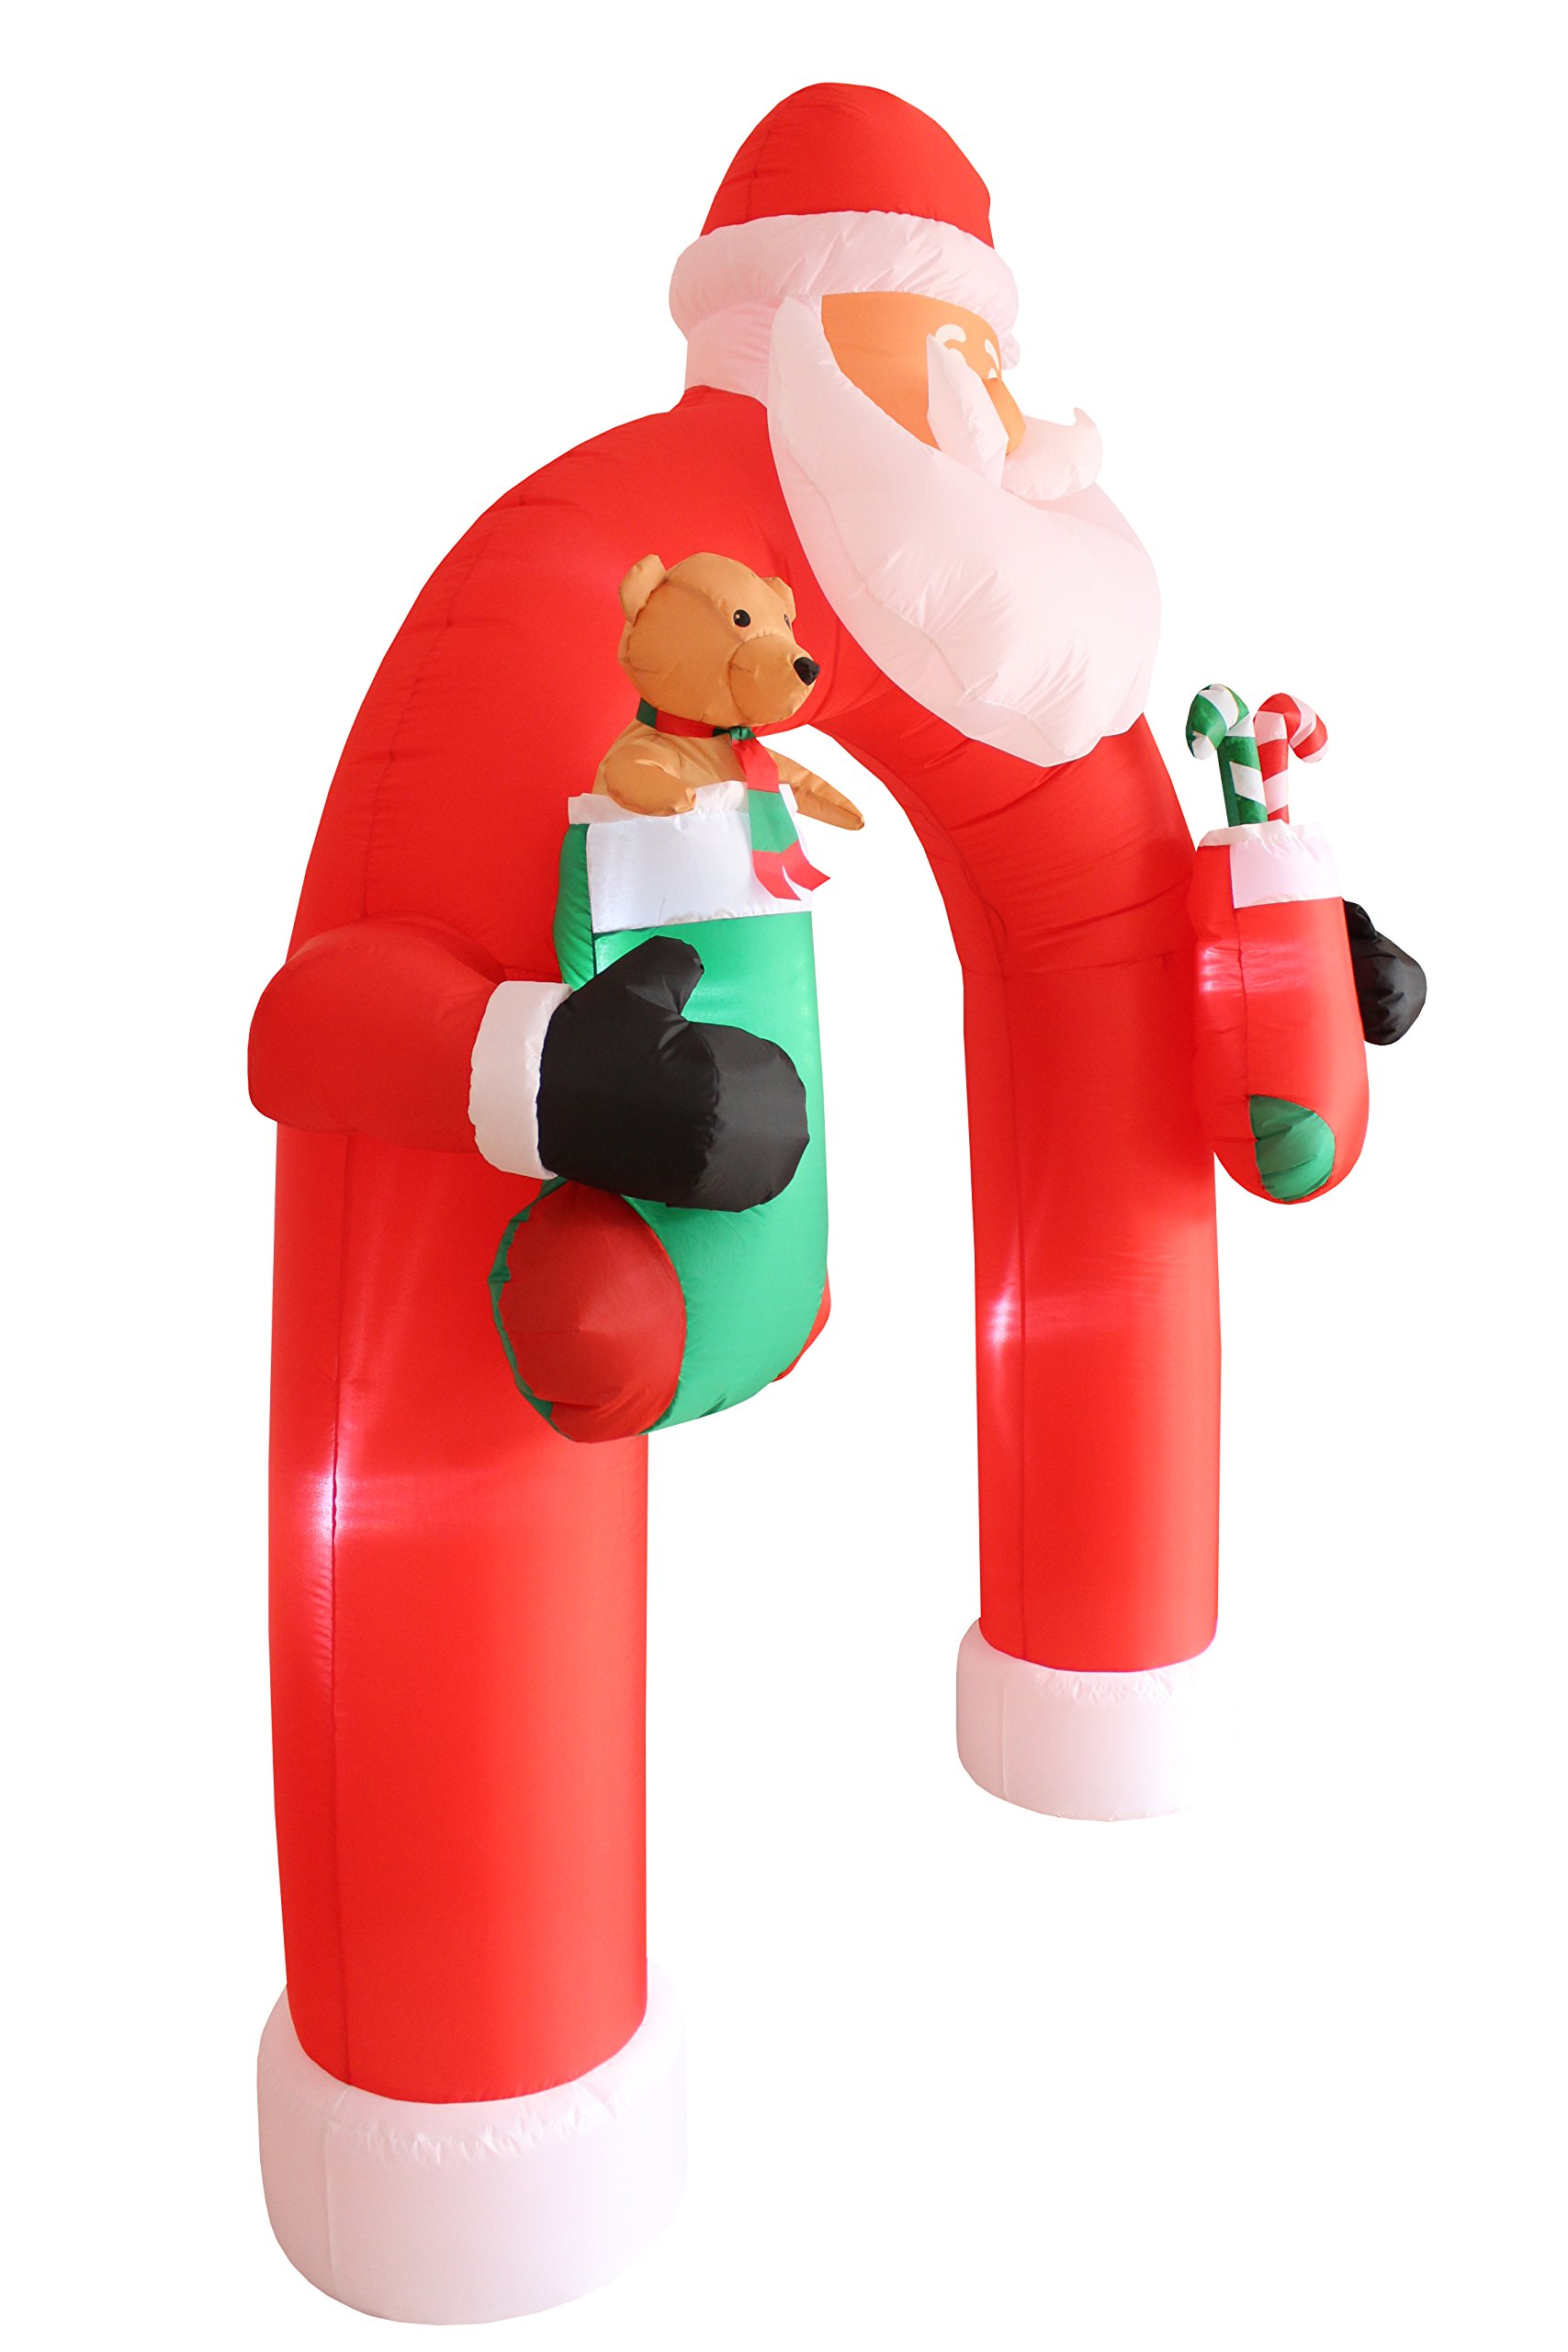 9 Foot Tall Lighted Christmas Inflatable Santa Claus Archway Arch with Teddy Bear Sugar Cane Cute Indoor Outdoor Garden Yard Party Prop Decoration by Blossom (Image #3)